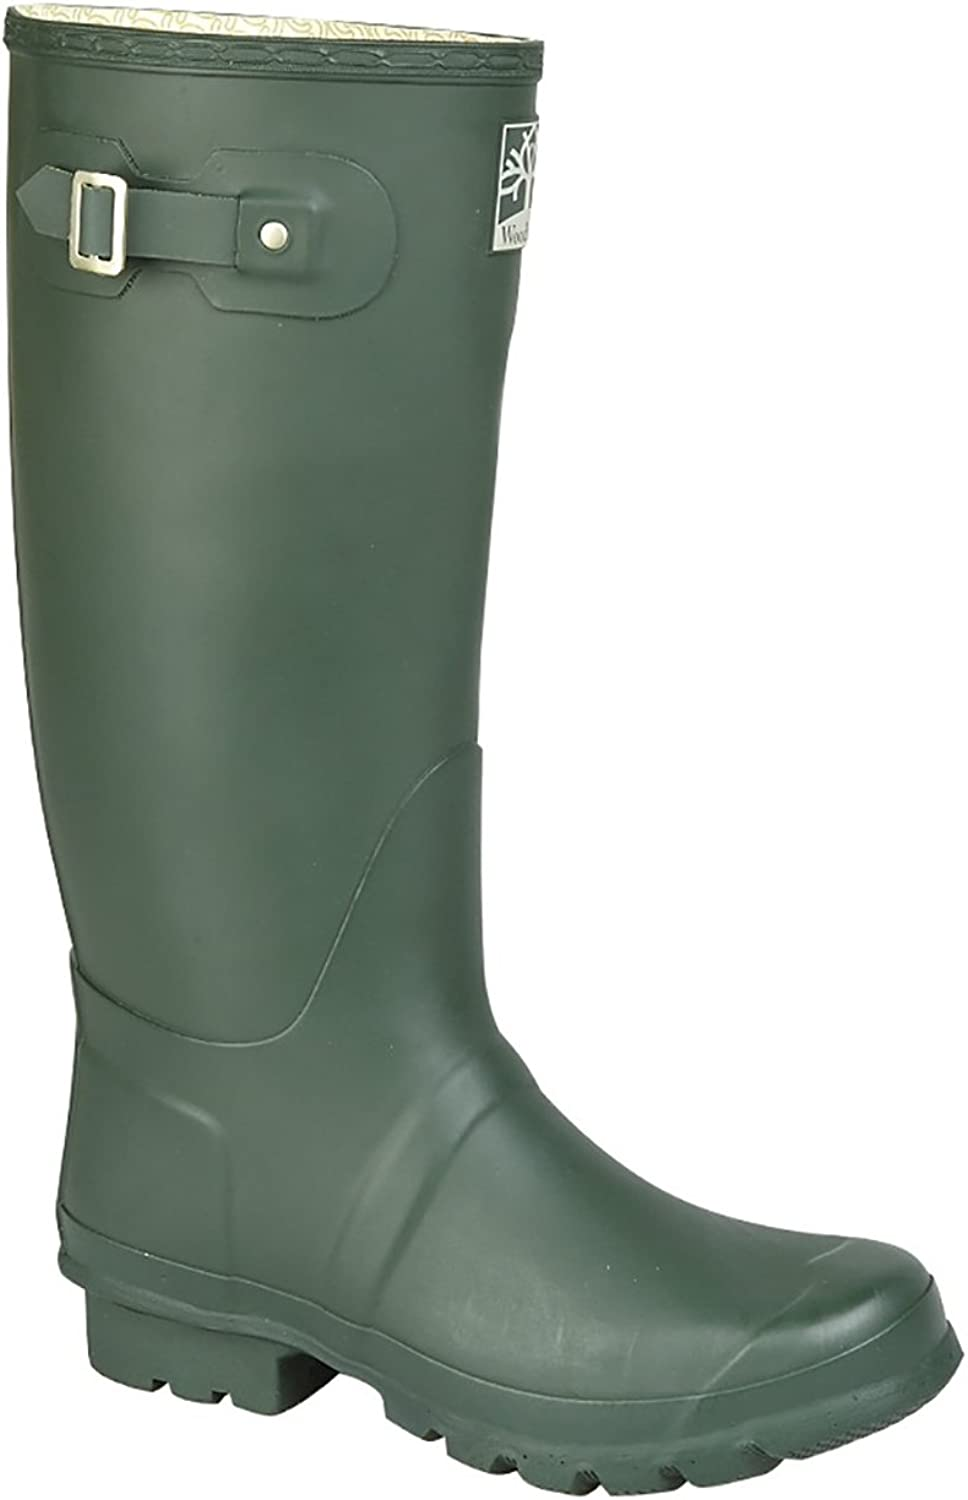 Mens New 'WIDE FIT' Quality Strap Unisex Wellington Boots Rain Winter Geblackus Comfort Fit